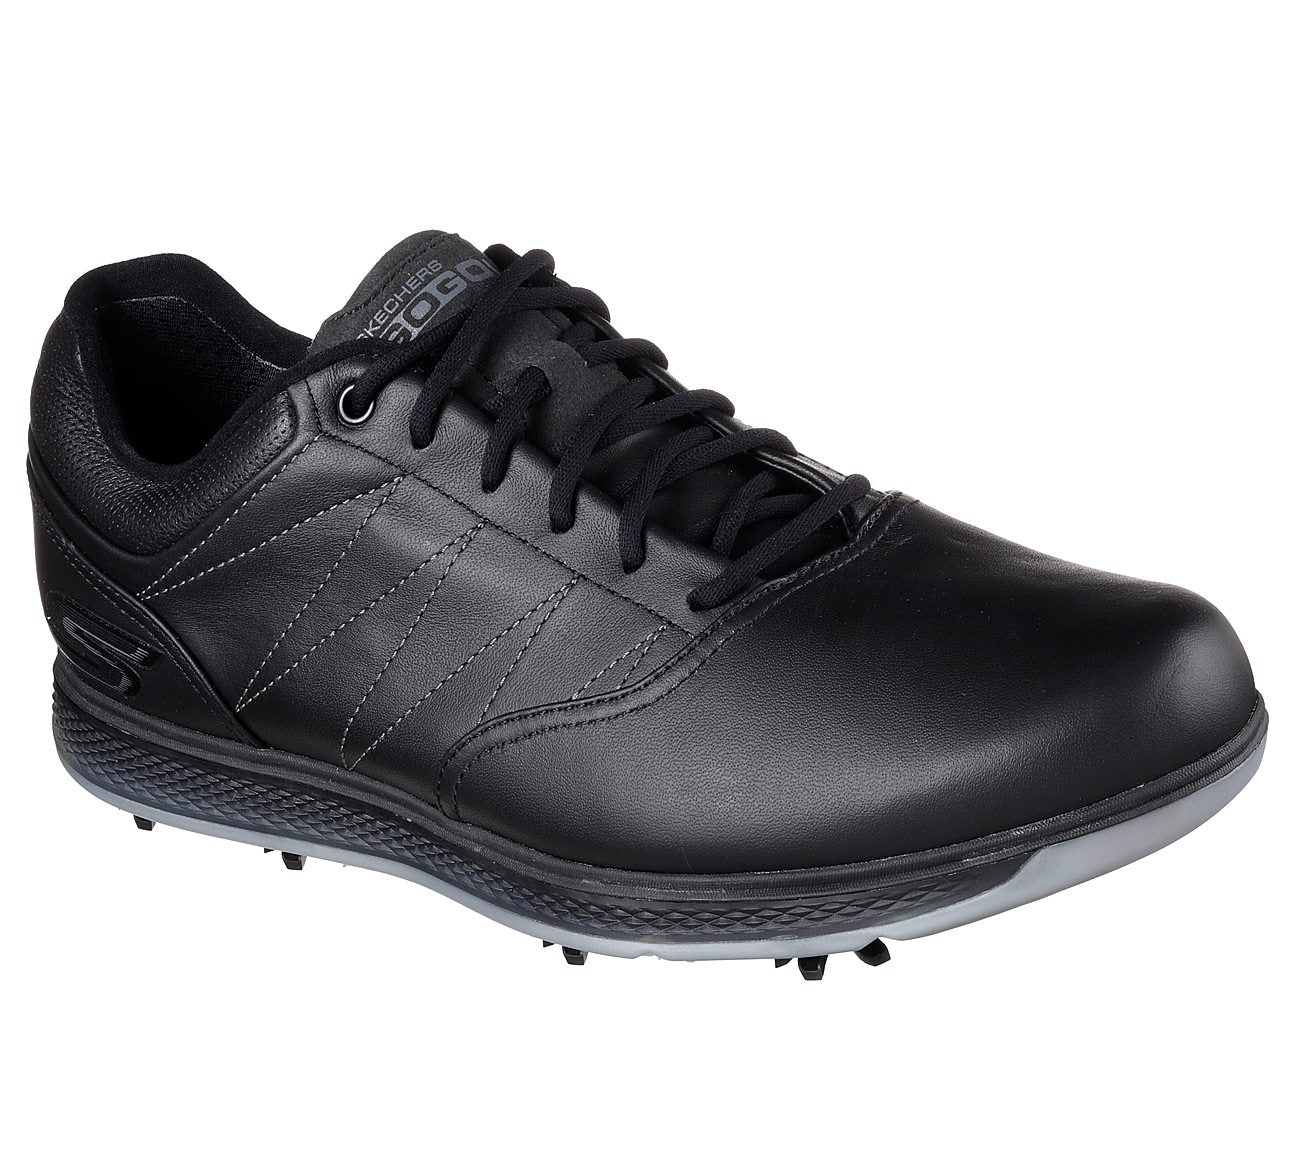 19edc9b6e53e SKECHERS MENS GO GOLF PRO V.3- BLACK - Golf Anything US